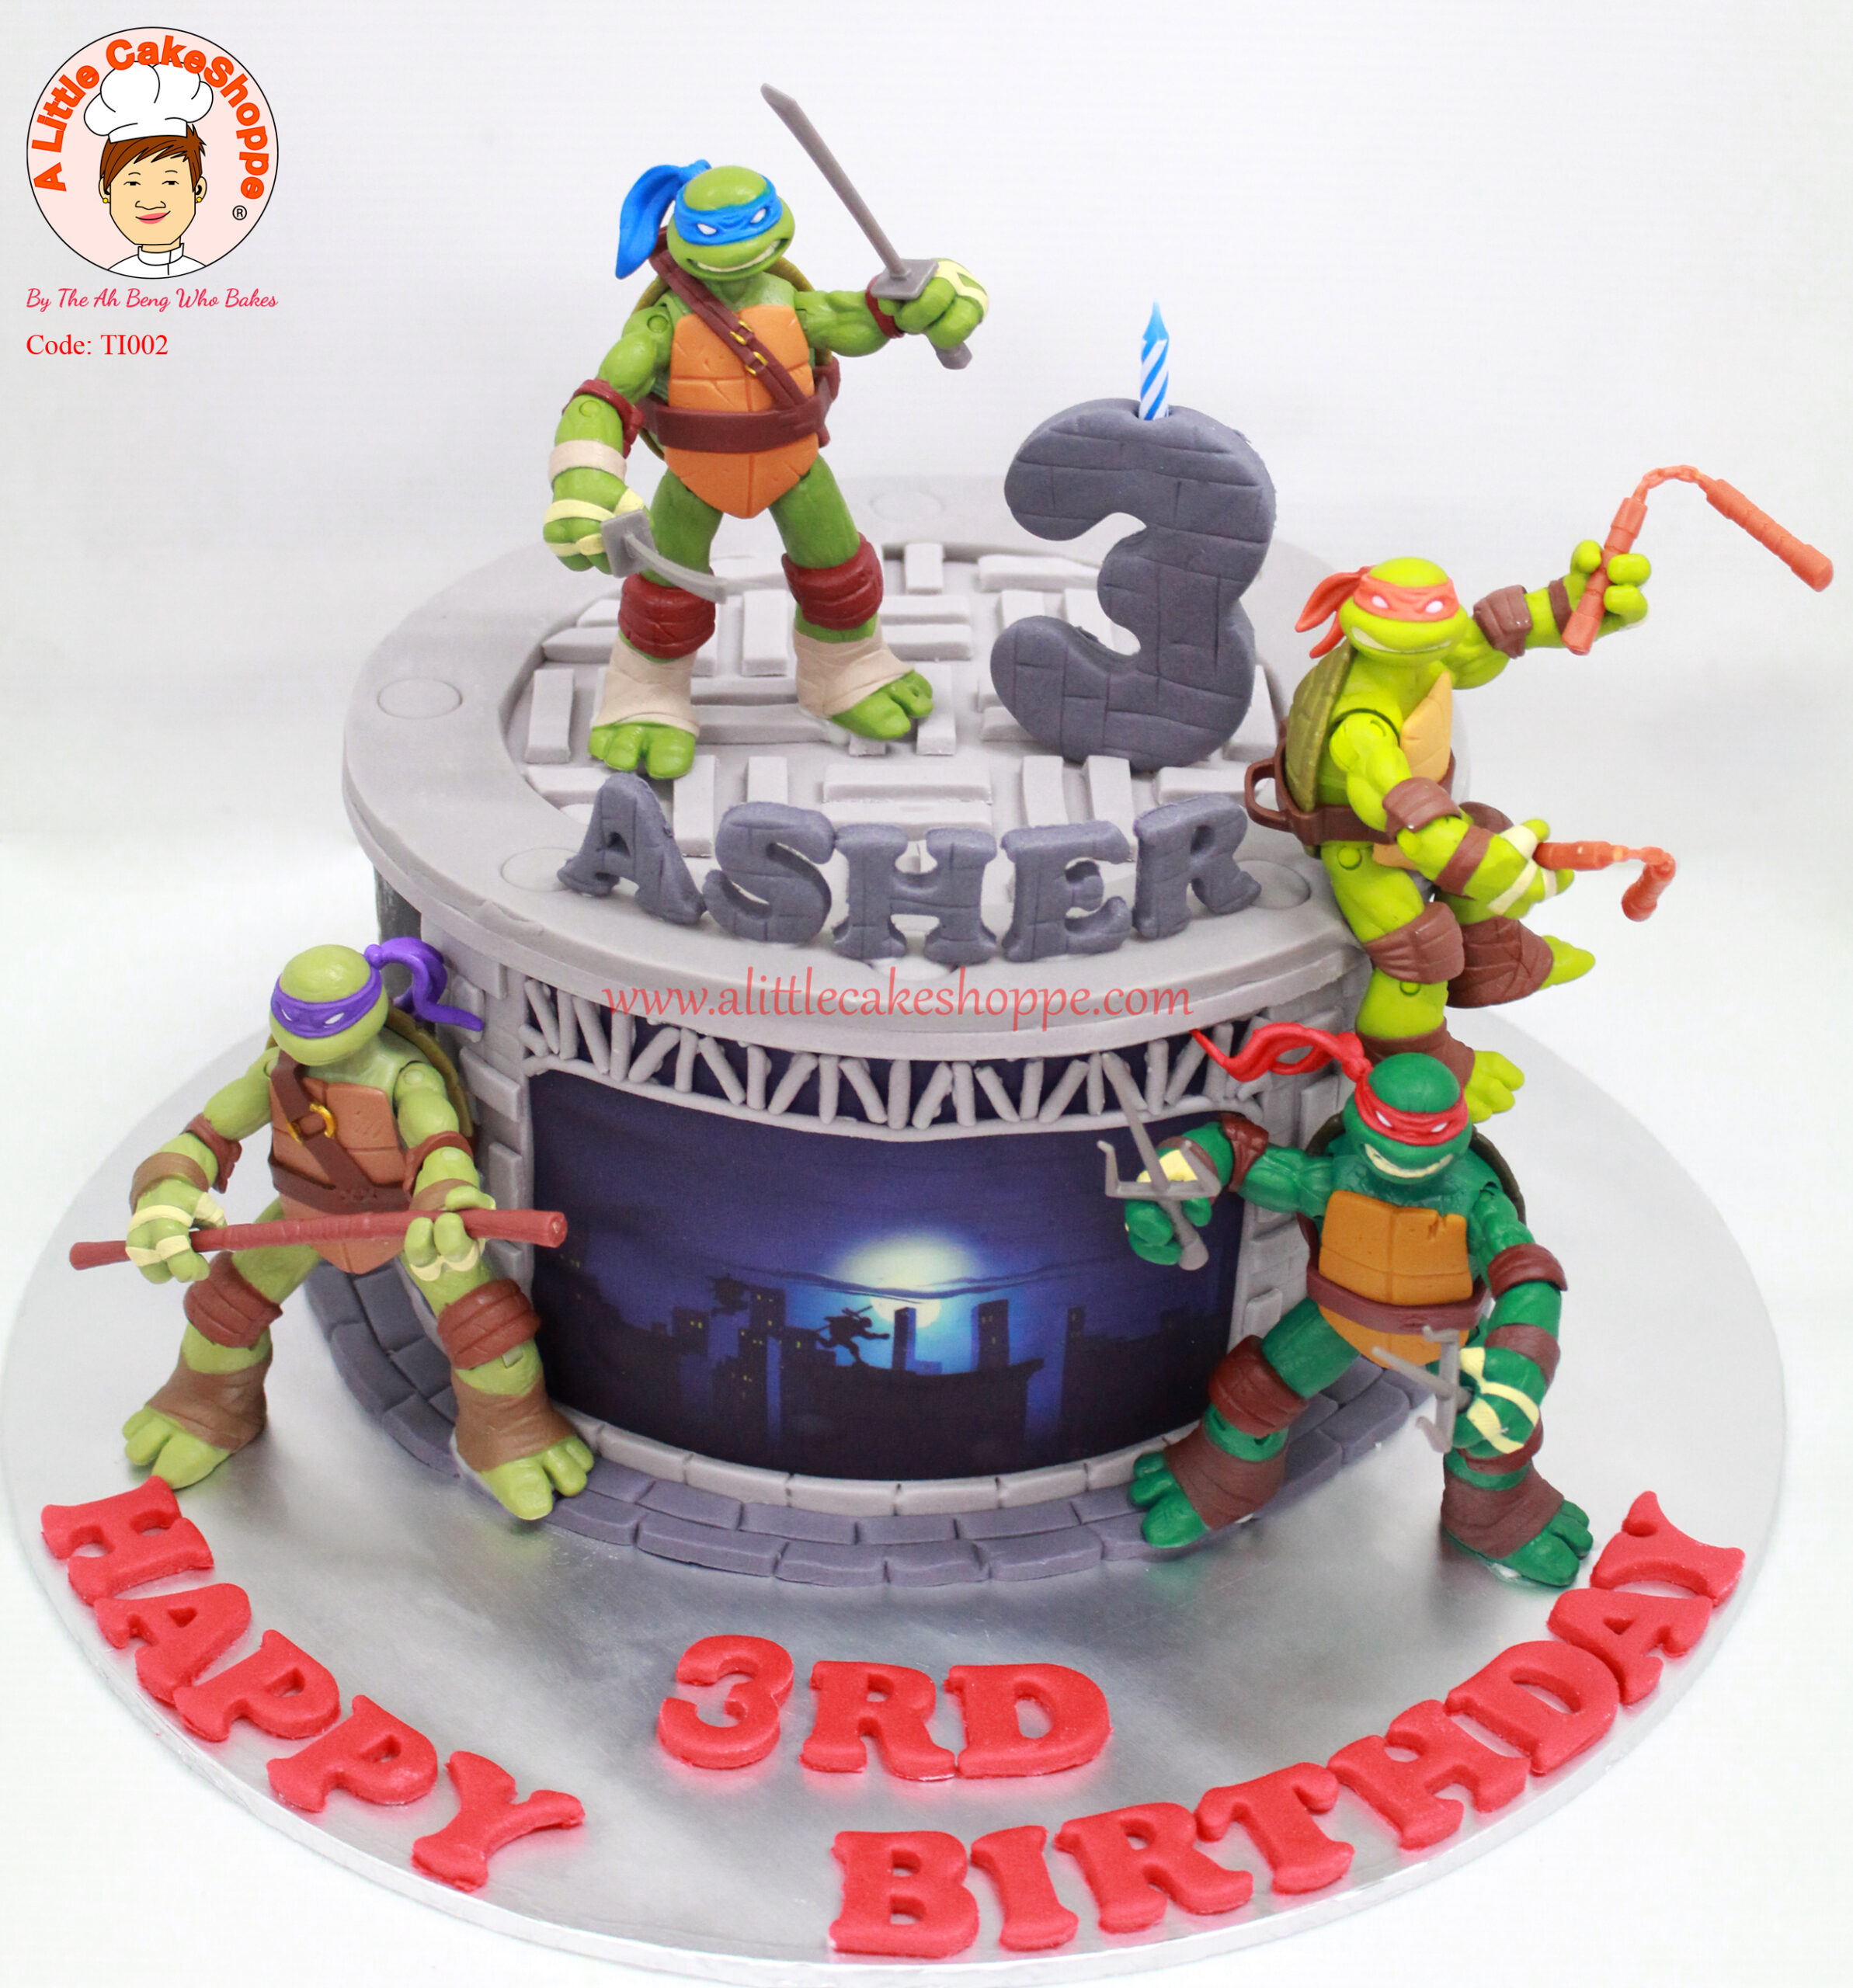 Best Customised Cake Singapore custom cake 2D 3D birthday cake cupcakes wedding corporate events anniversary fondant fresh cream buttercream cakes alittlecakeshoppe a little cake shoppe compliments review singapore bakers SG cakeshop ah beng who bakes teenage mutant ninja turtles